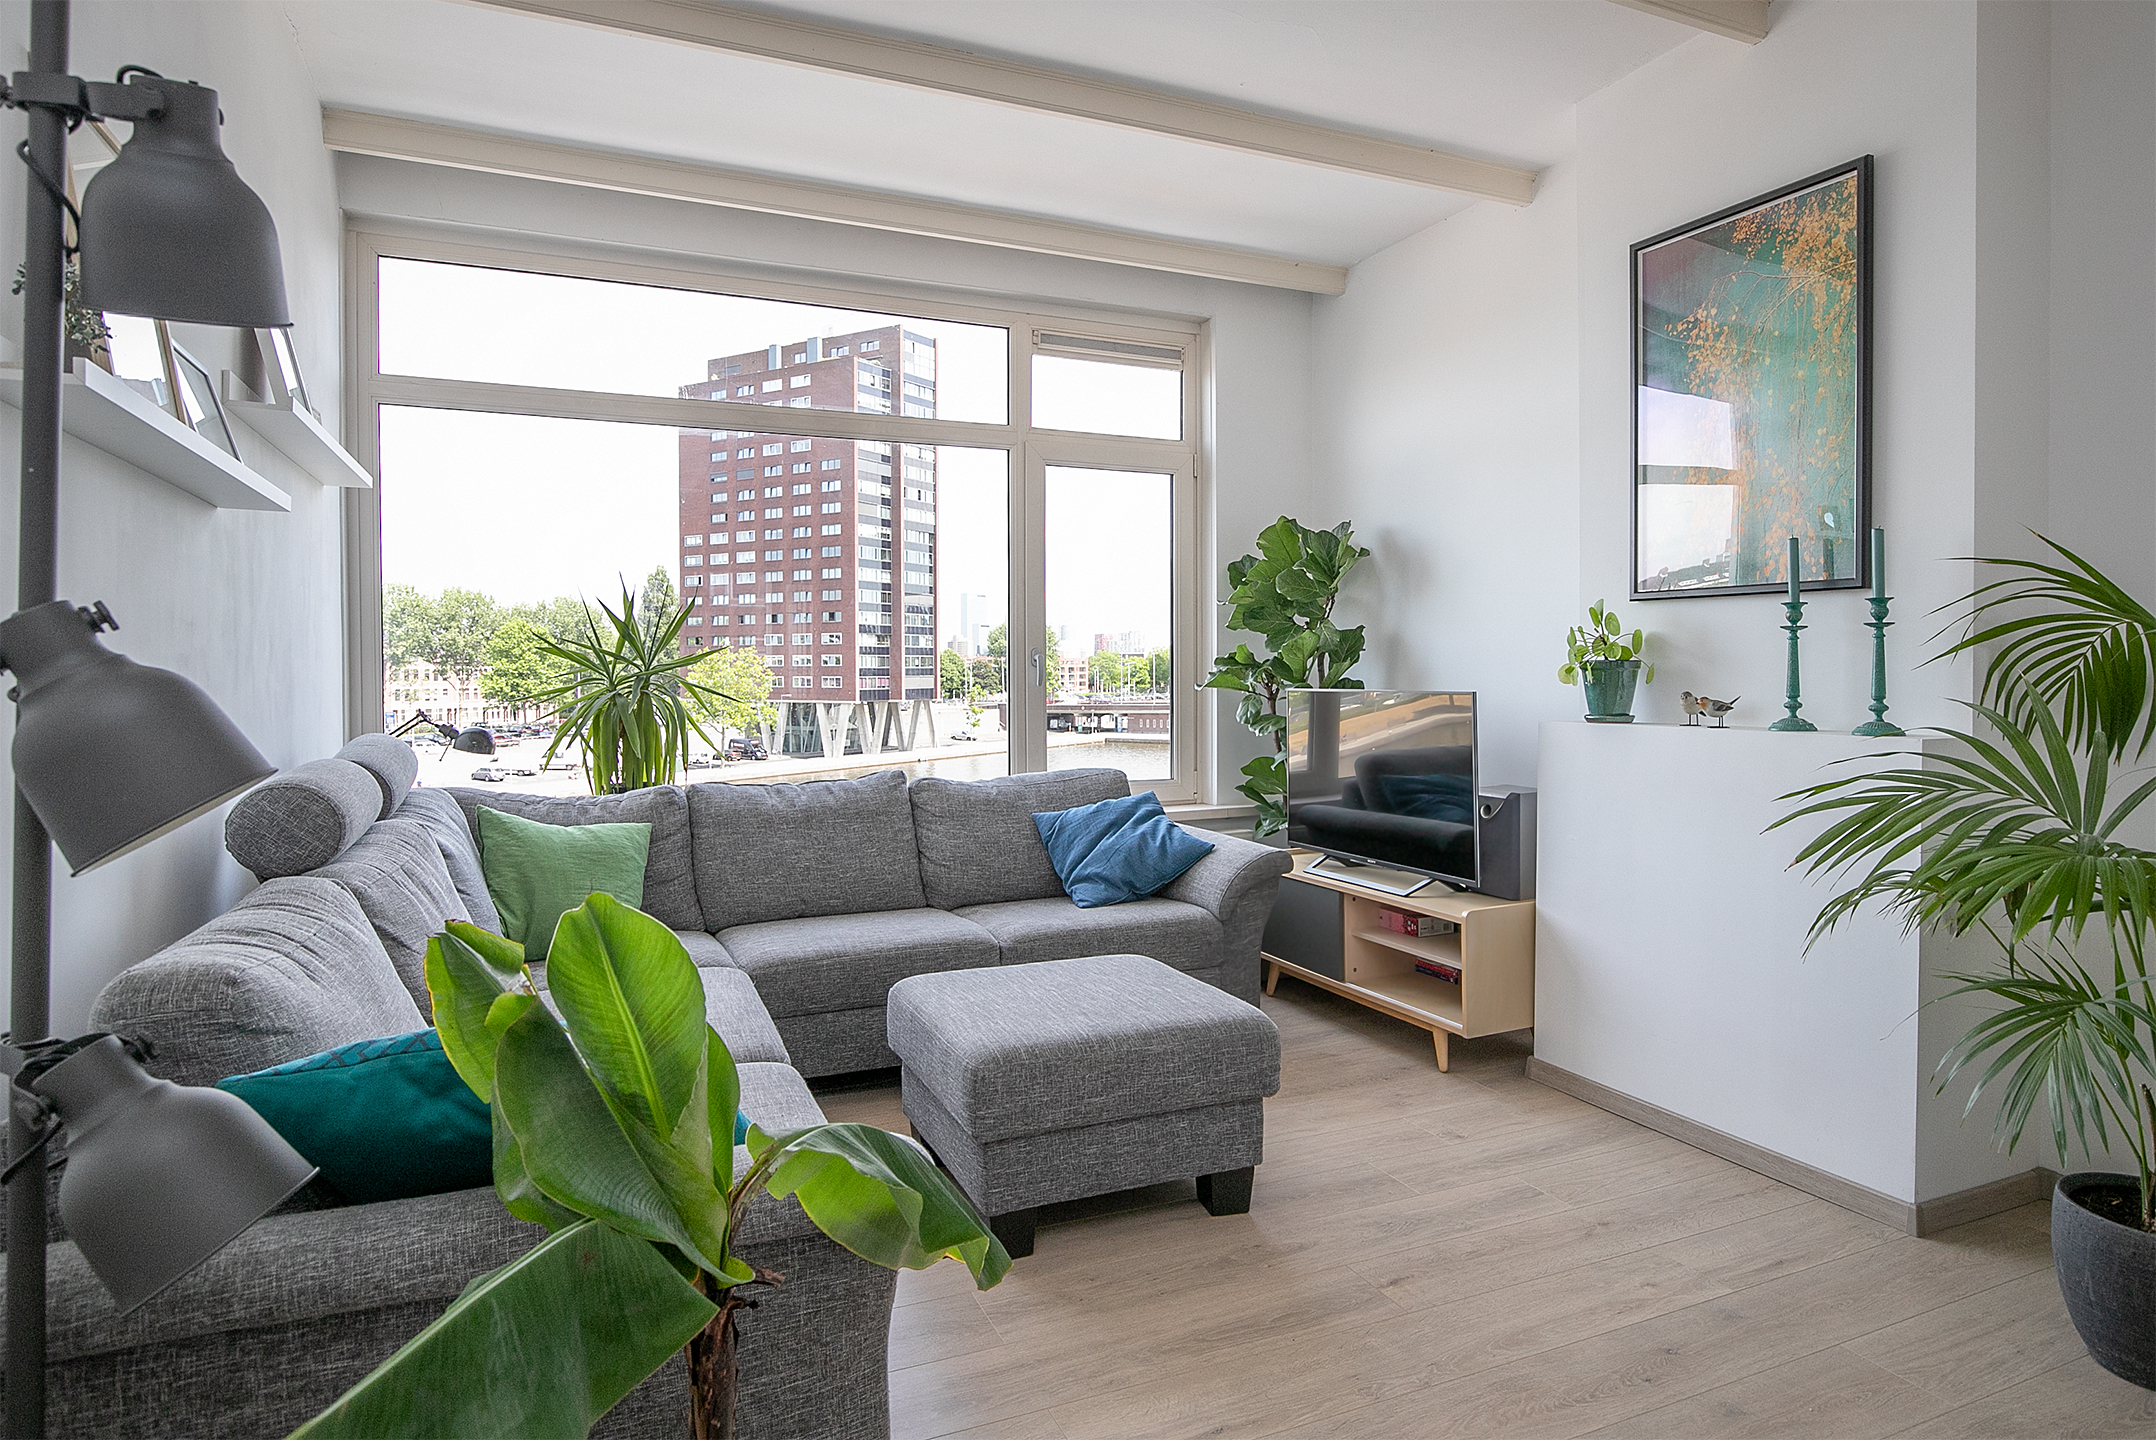 Coolhaven 140, rotterdam